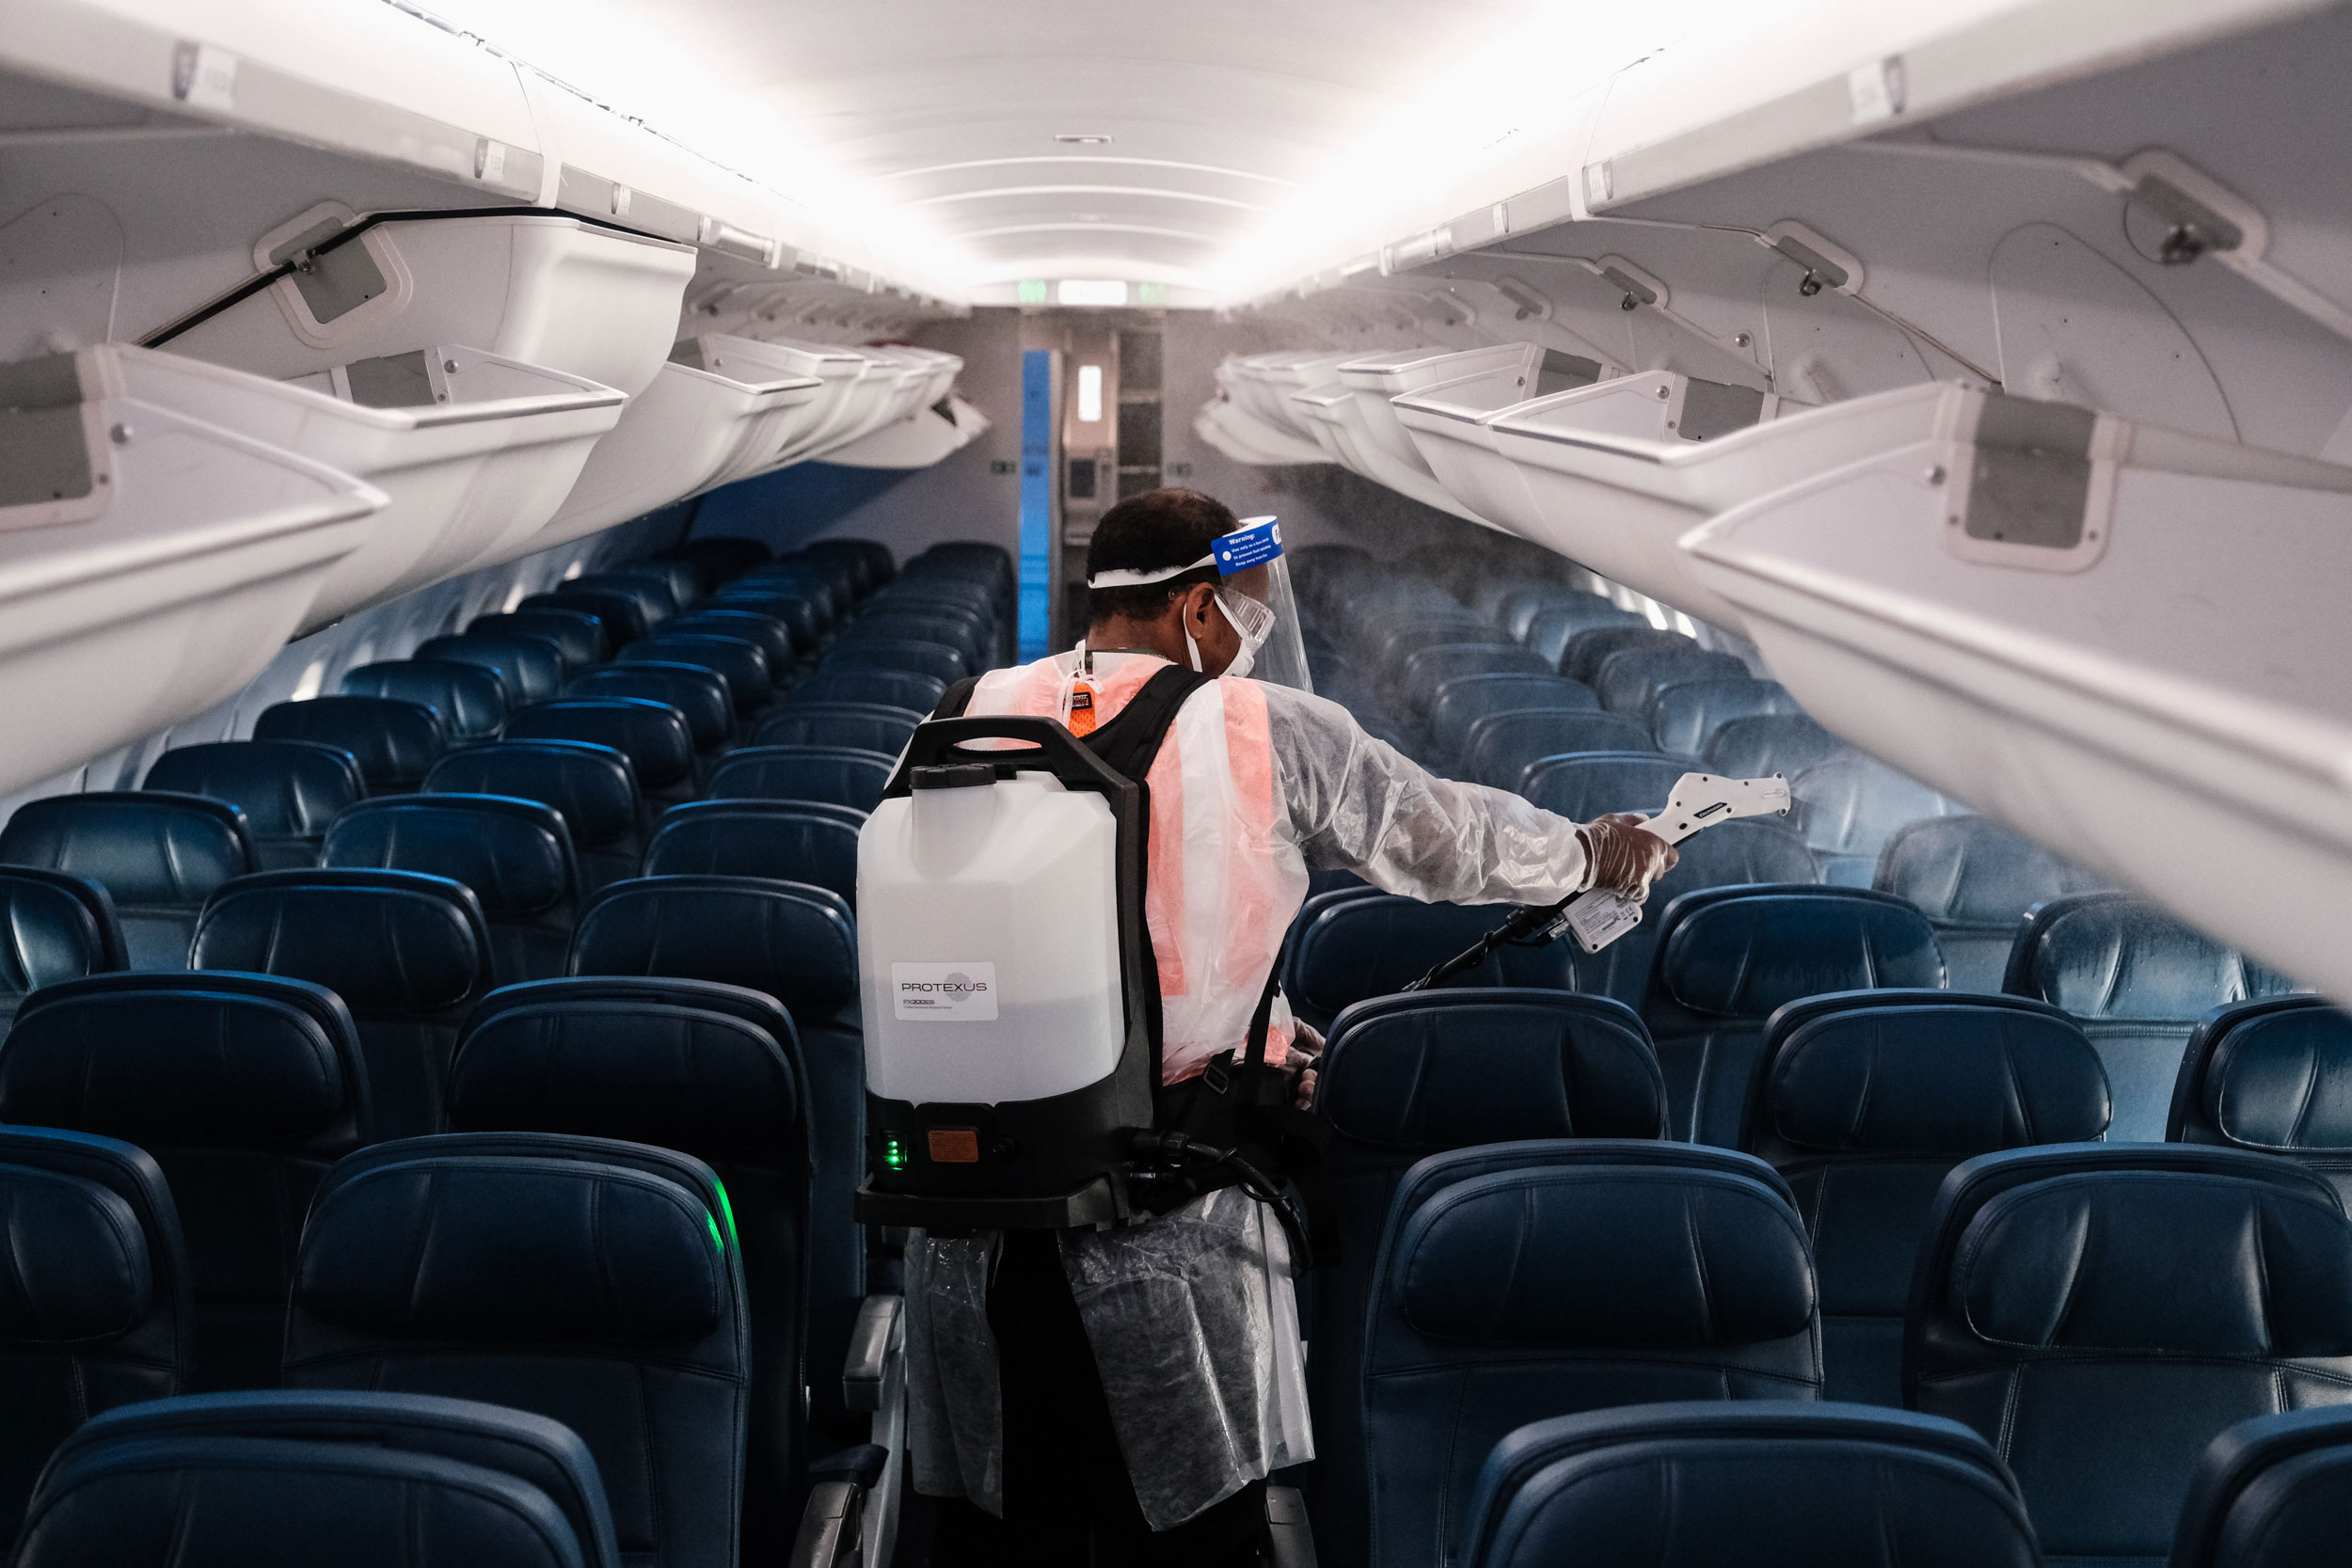 An airport employee performs an aircraft disinfecting demonstration during a media preview at the Ronald Reagan National Airport on July 22.